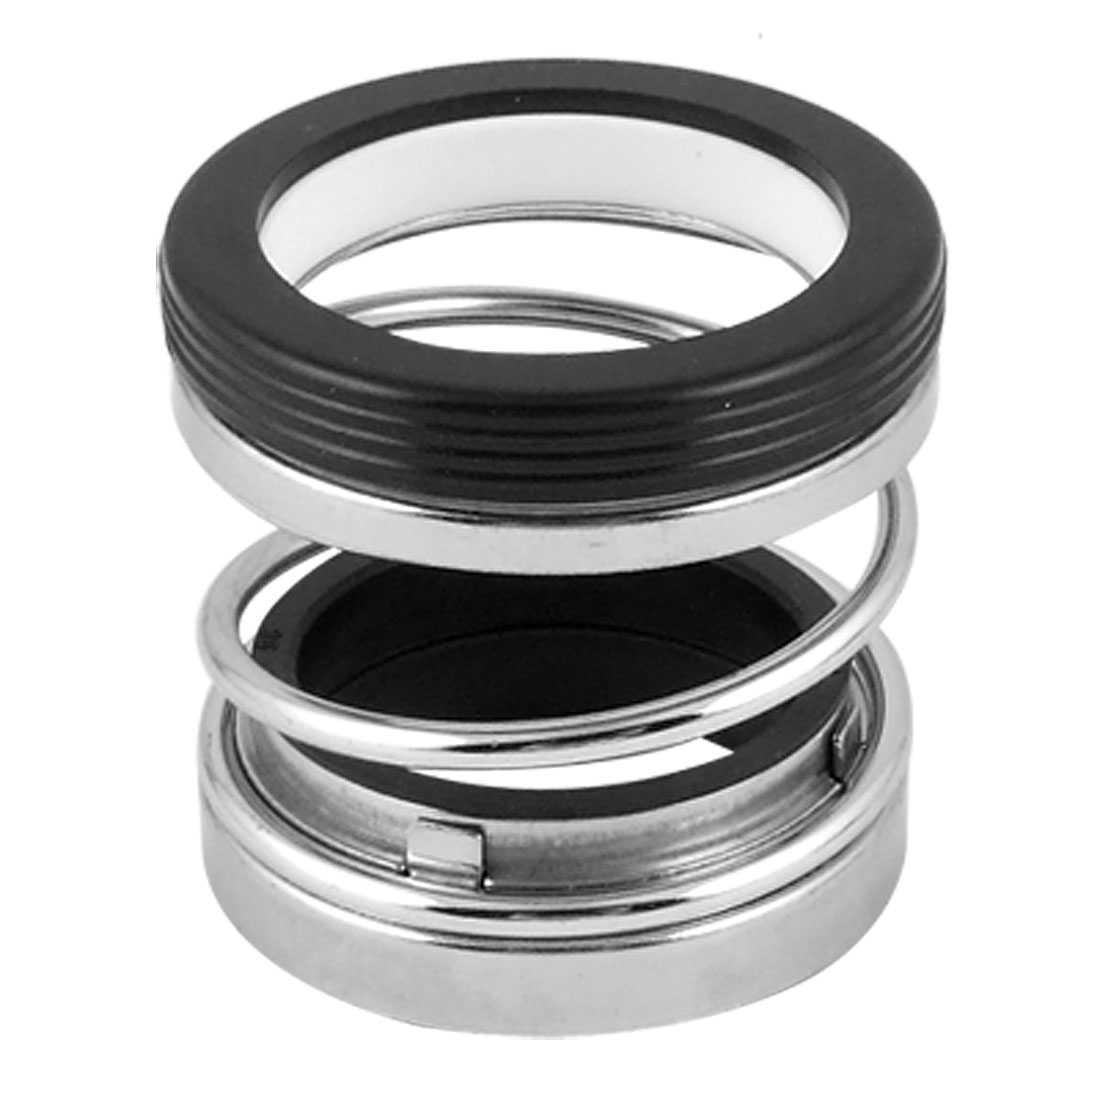 108-35 Inbuilt Single Spring Mechanical Shaft Seal for Pump